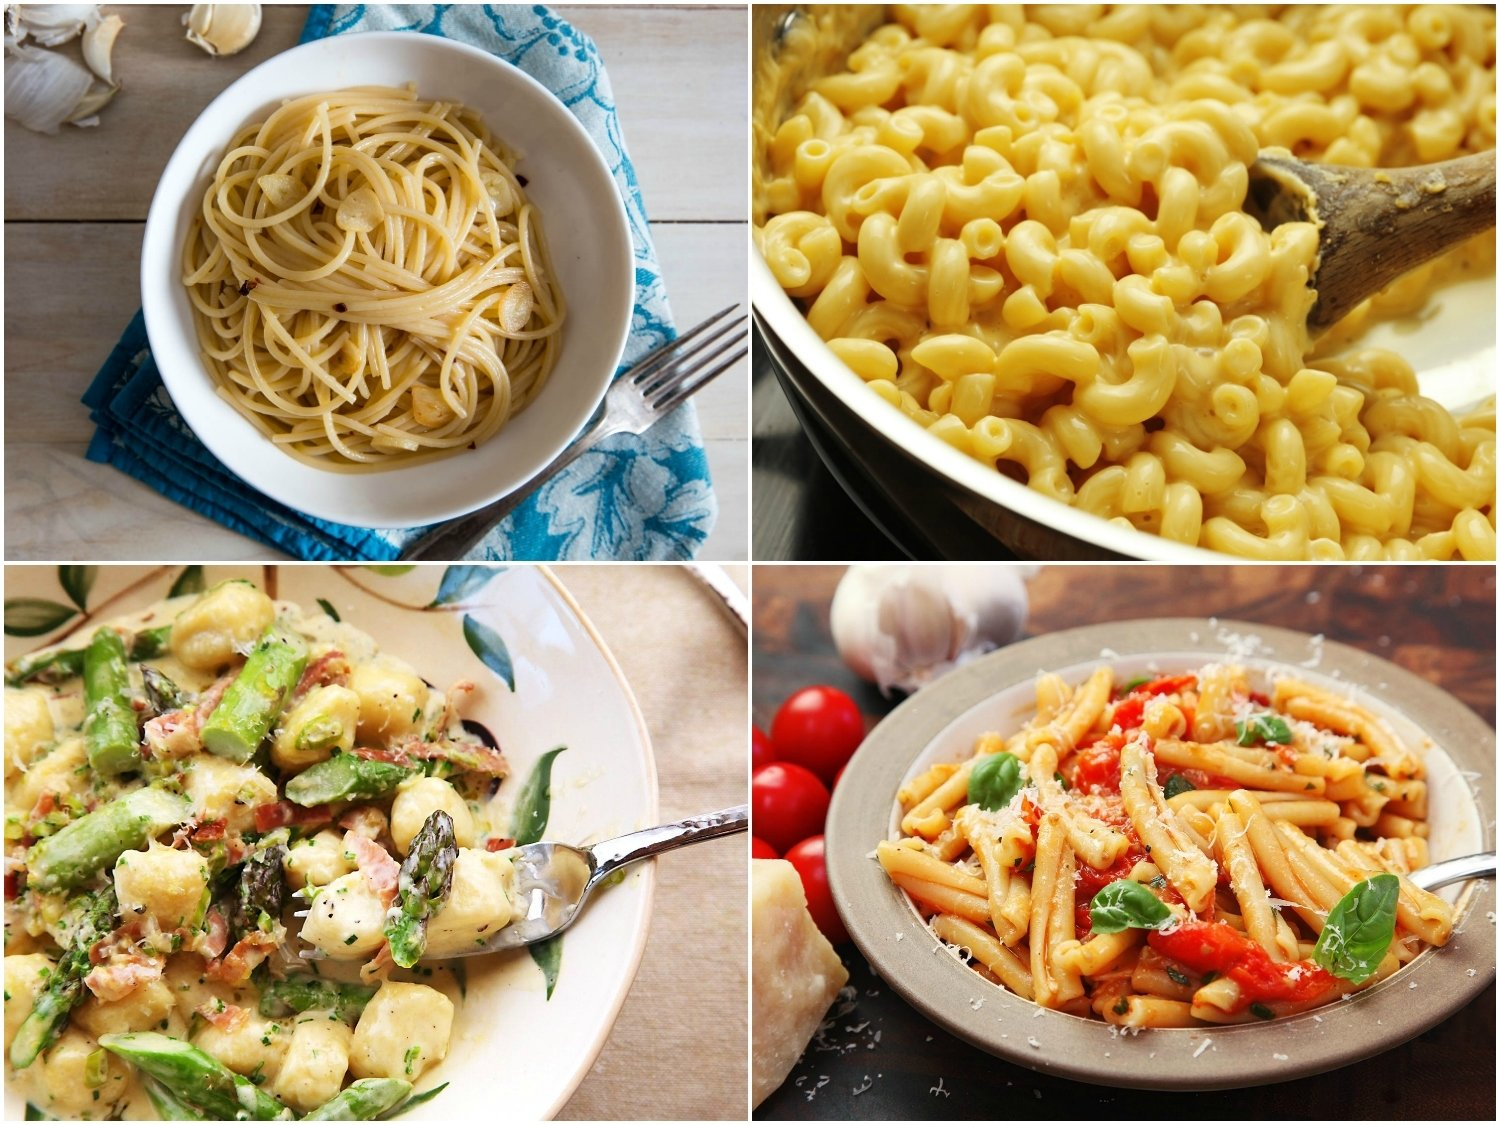 10 Ideal Easy And Fast Dinner Ideas 25 quick pasta recipes for simple weeknight meals serious eats 3